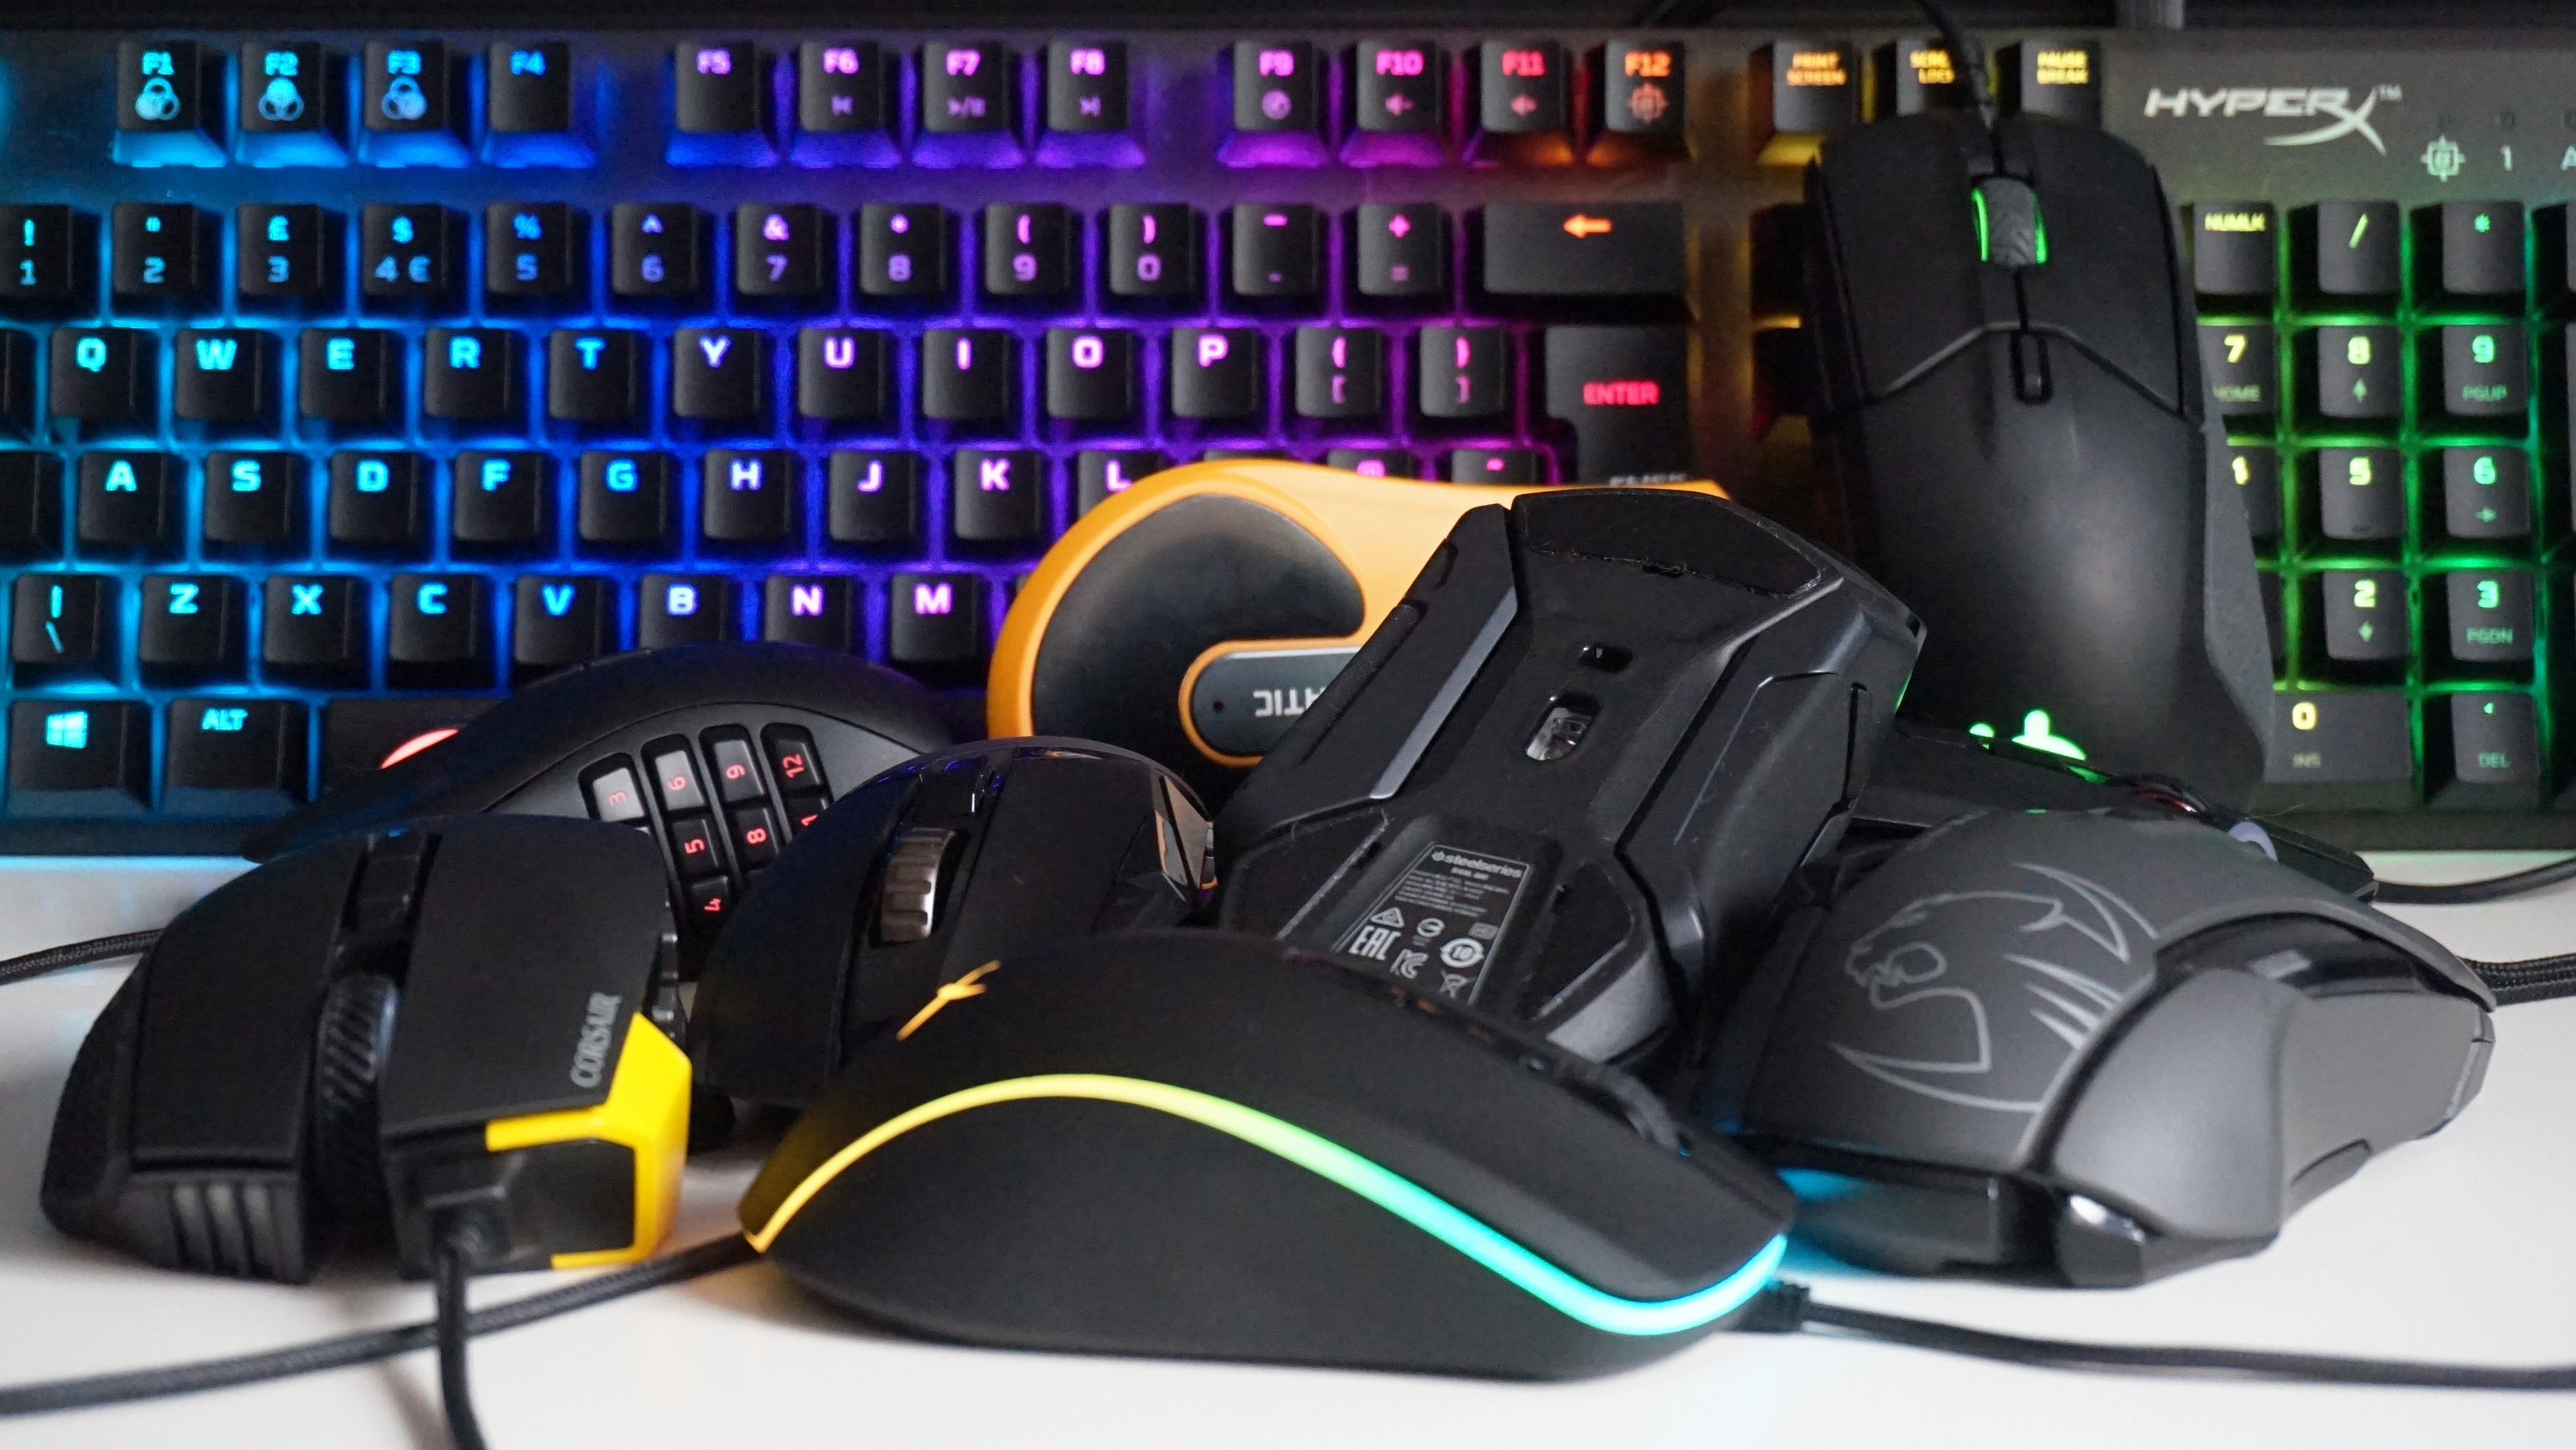 Best gaming mouse 2019: Top wired and wireless gaming mice